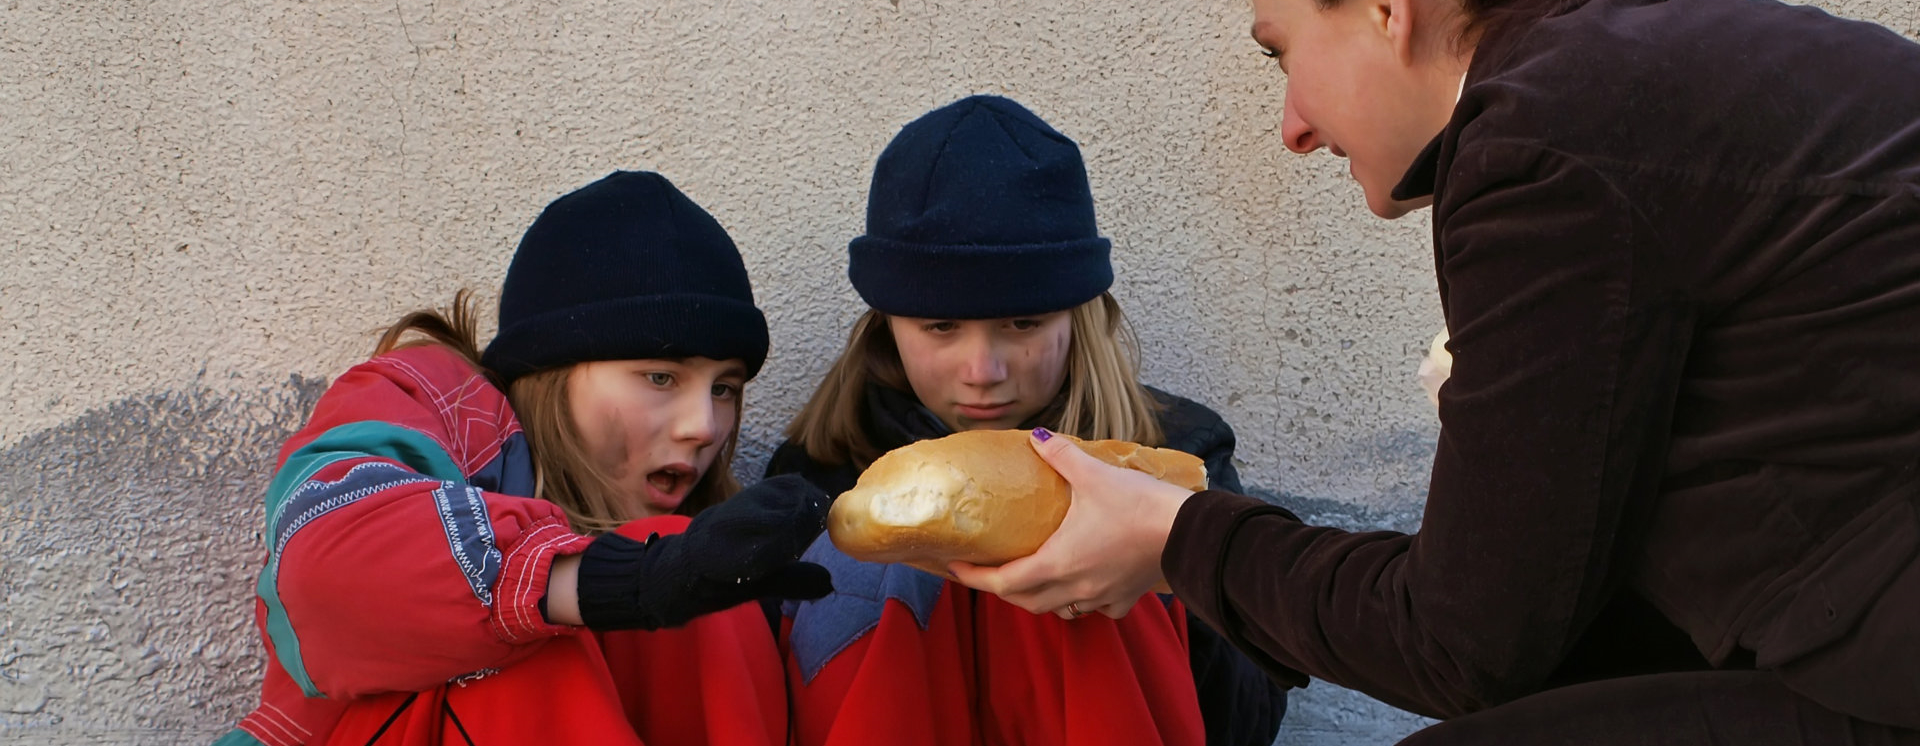 woman giving bread to the kids